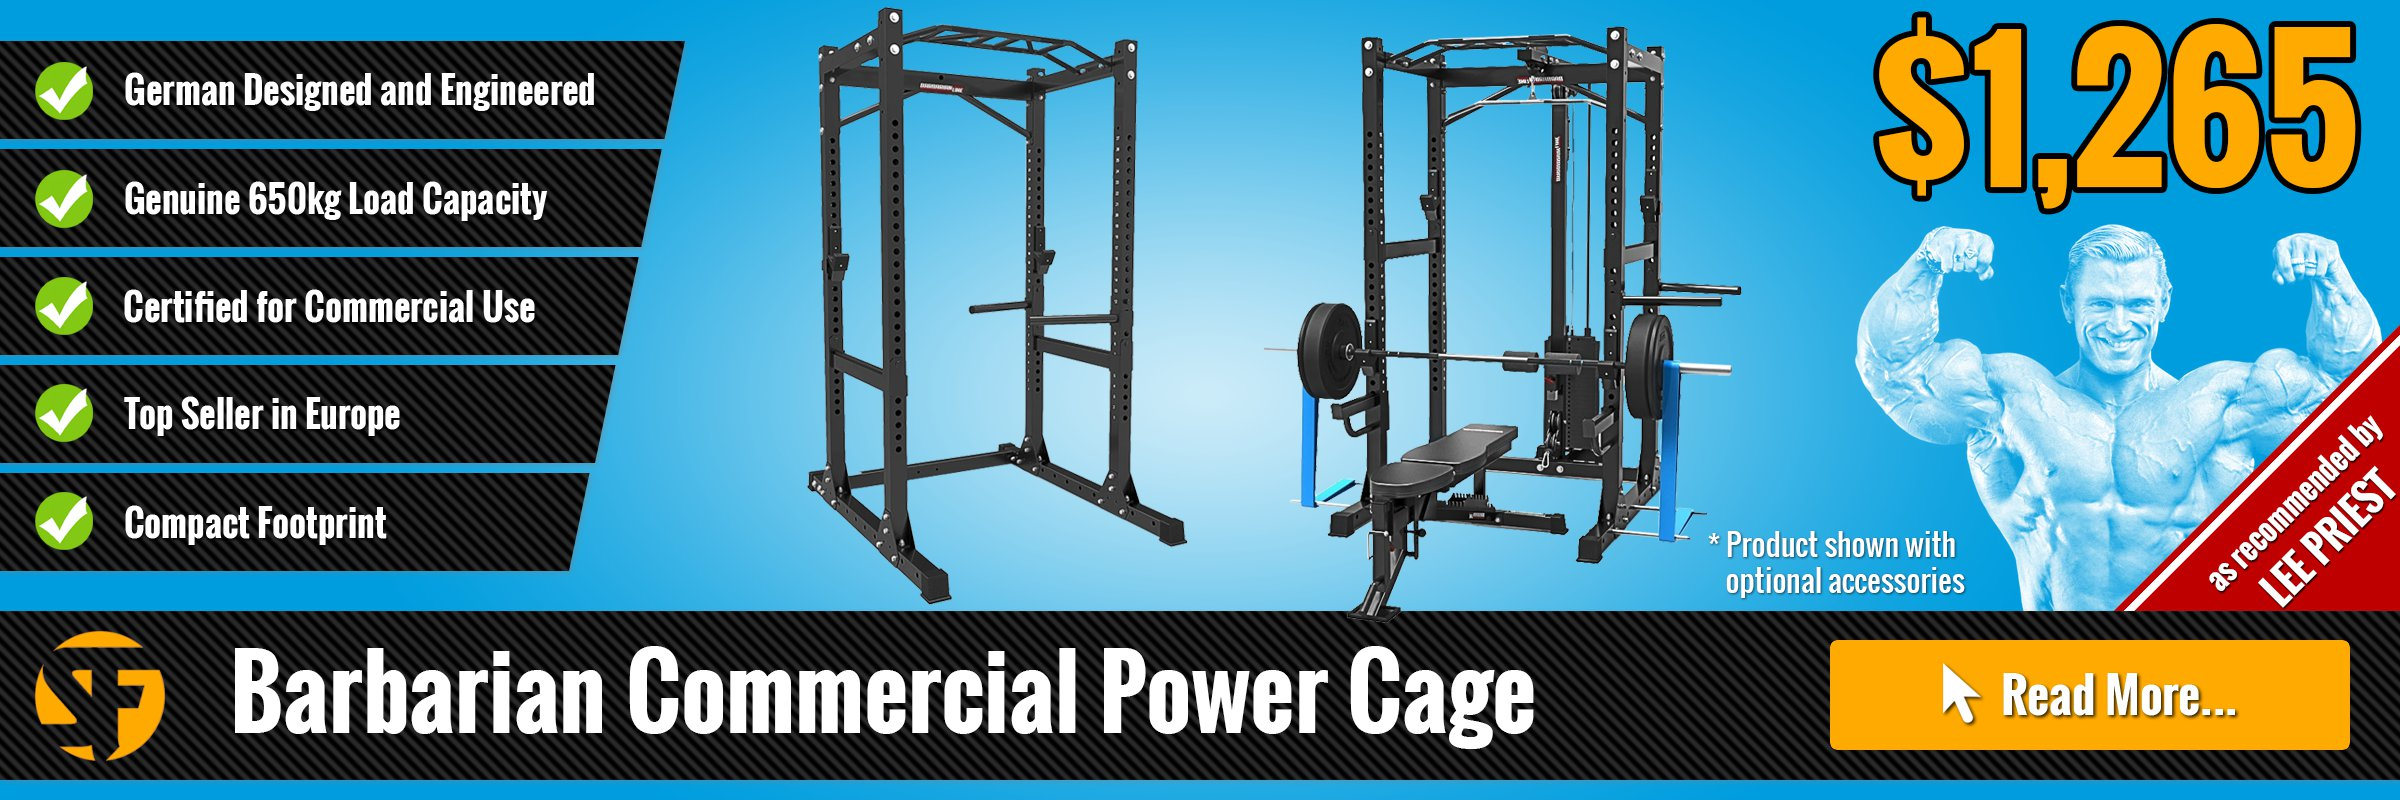 Power Racks and Cages by Barbarian